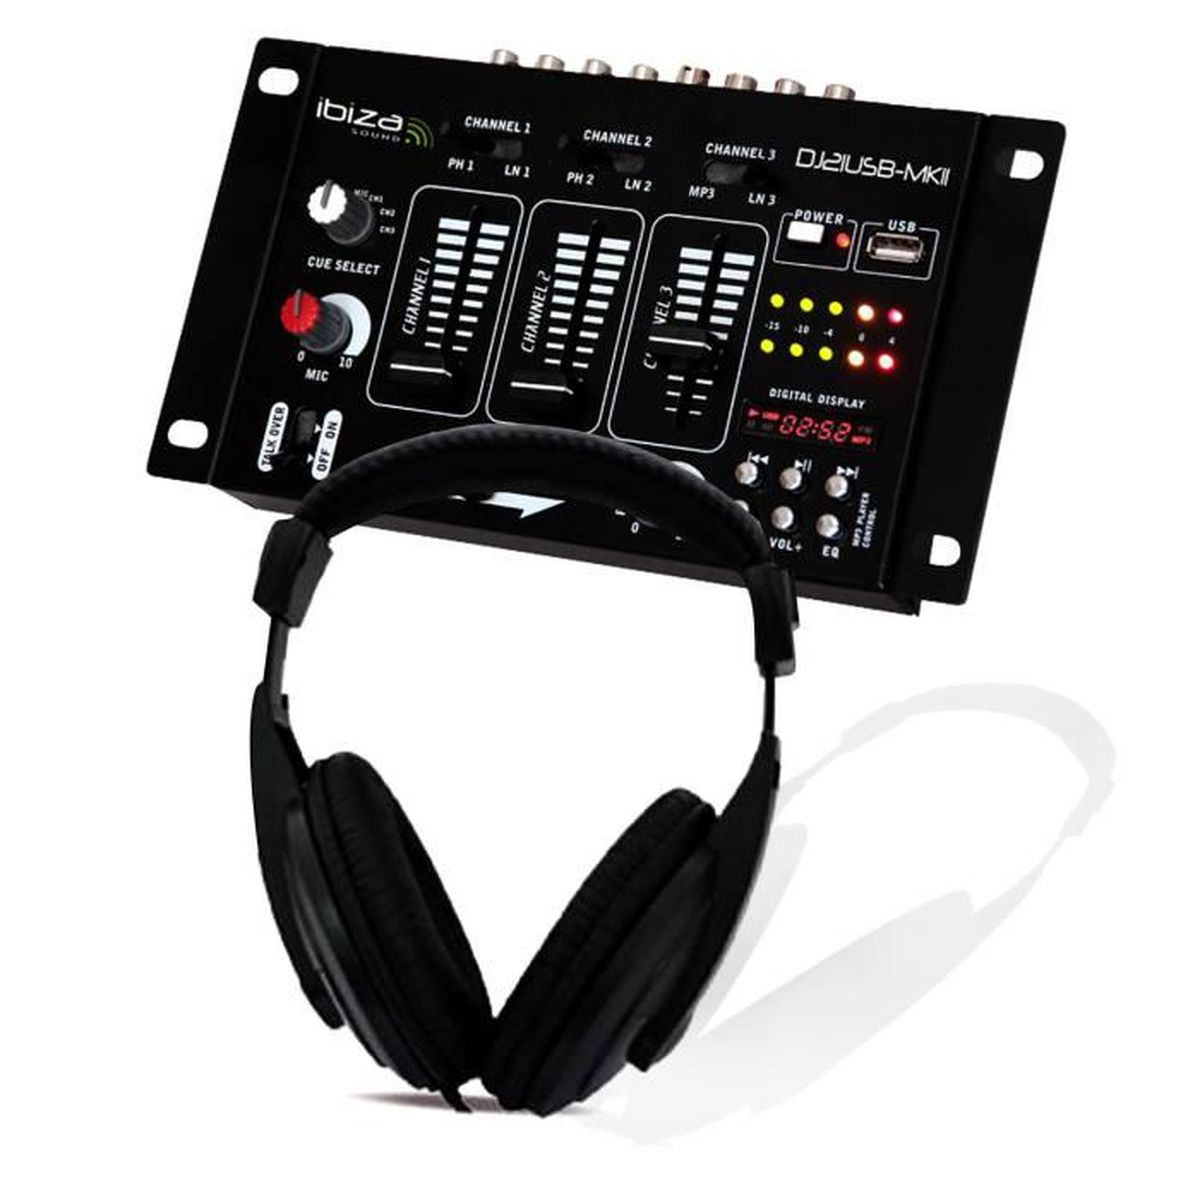 casque dj sono table de mixage dj21 usb mkii ibiza sound. Black Bedroom Furniture Sets. Home Design Ideas